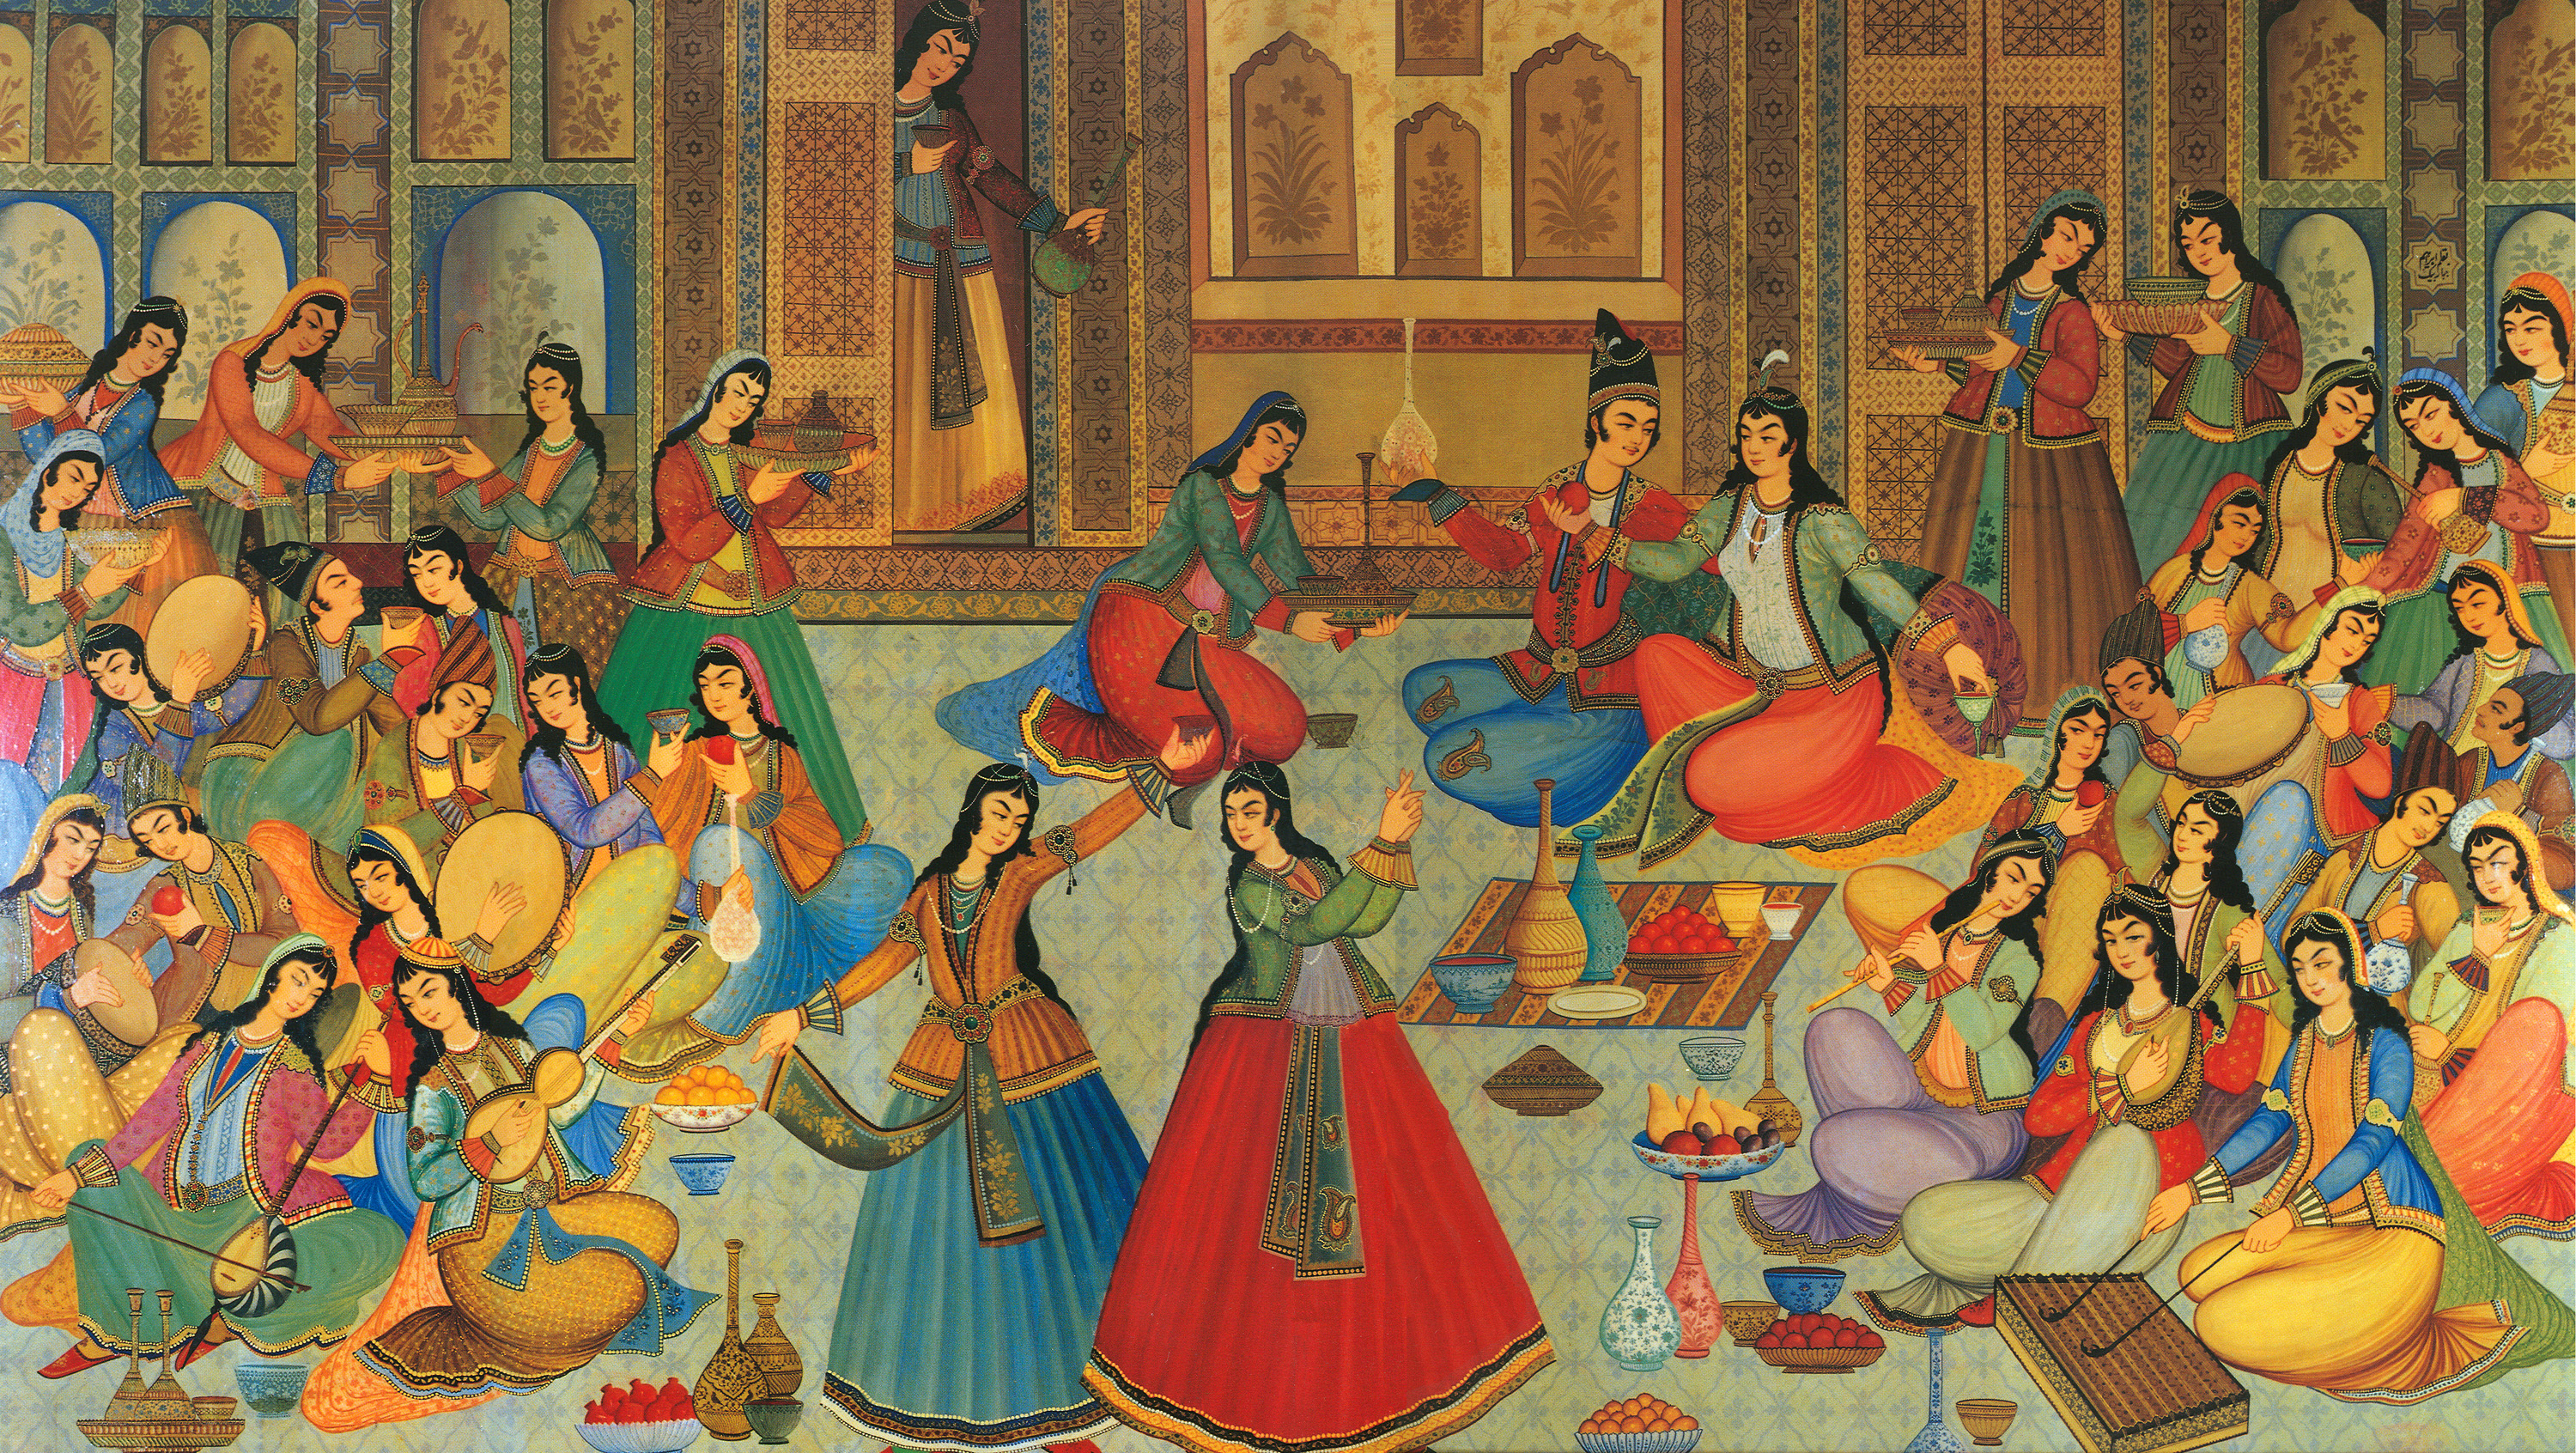 Painting from Hasht-Behesht palace, Isbahan, Iran, from 1669.